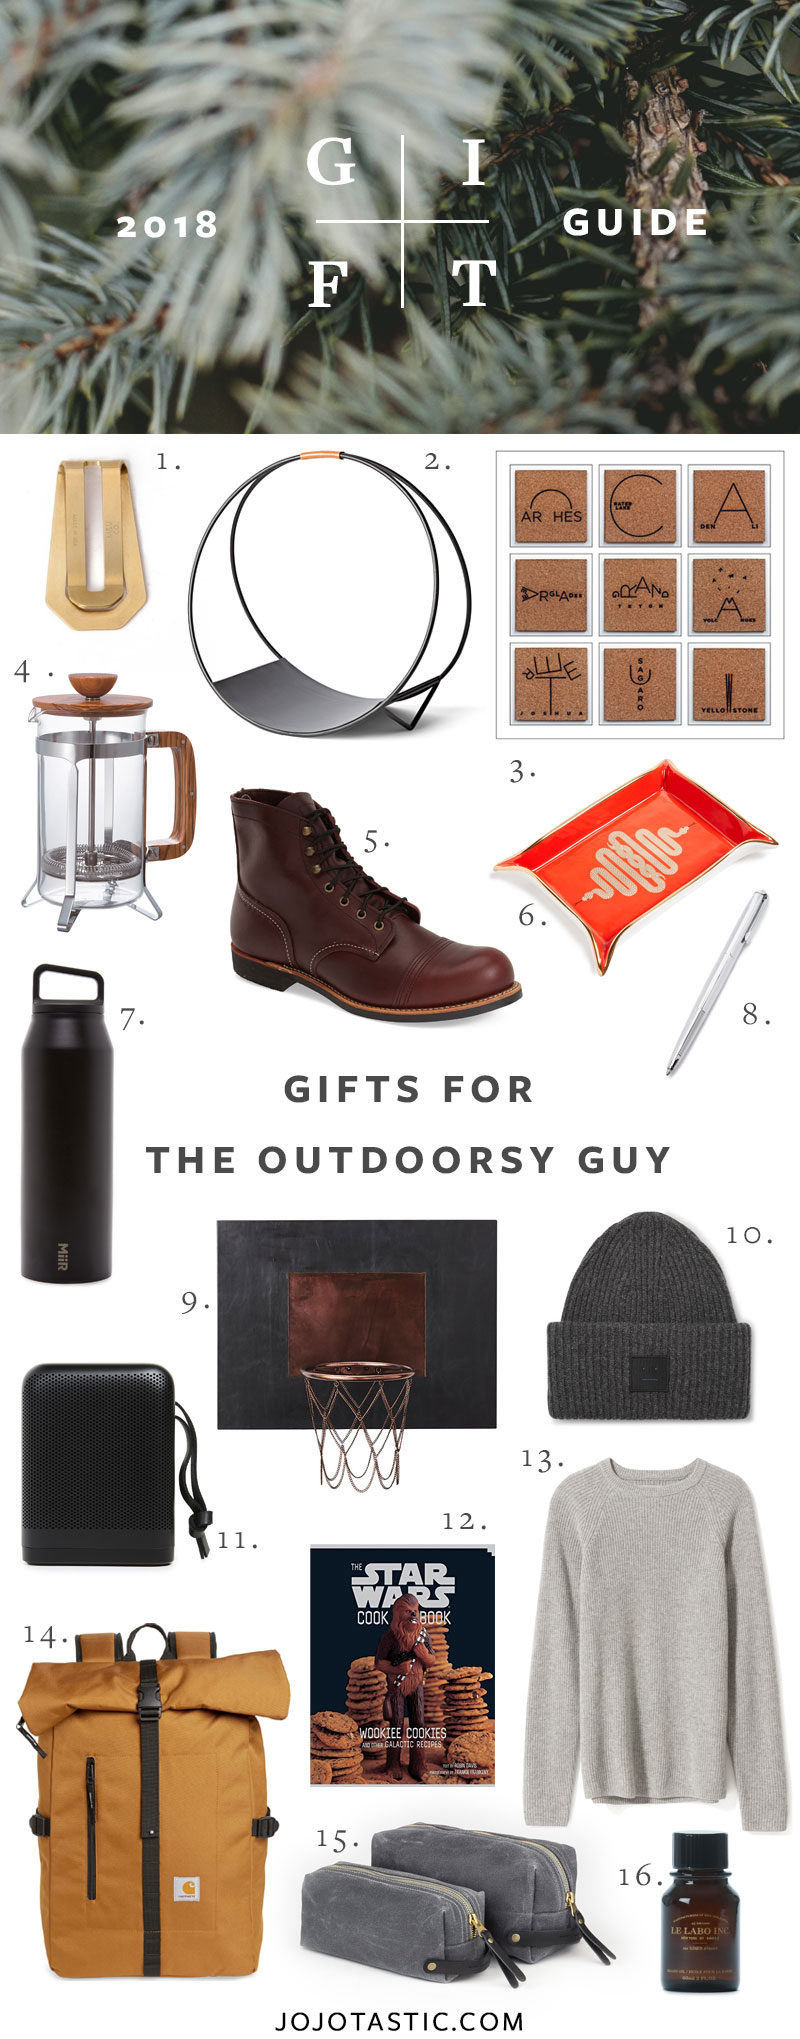 Outdoorsy Guy Gift Ideas, Gift Guide for Christmas & Holidays 2018 via jojotastic.com #giftguide #giftidea #giftgiving #gifts #presents #christmaspresents #christmasgiftideas #christmasgift #outdoorsy #mensgifts #forhim #giftsforhusband #giftsforbrother #giftsfordad #giftsformen